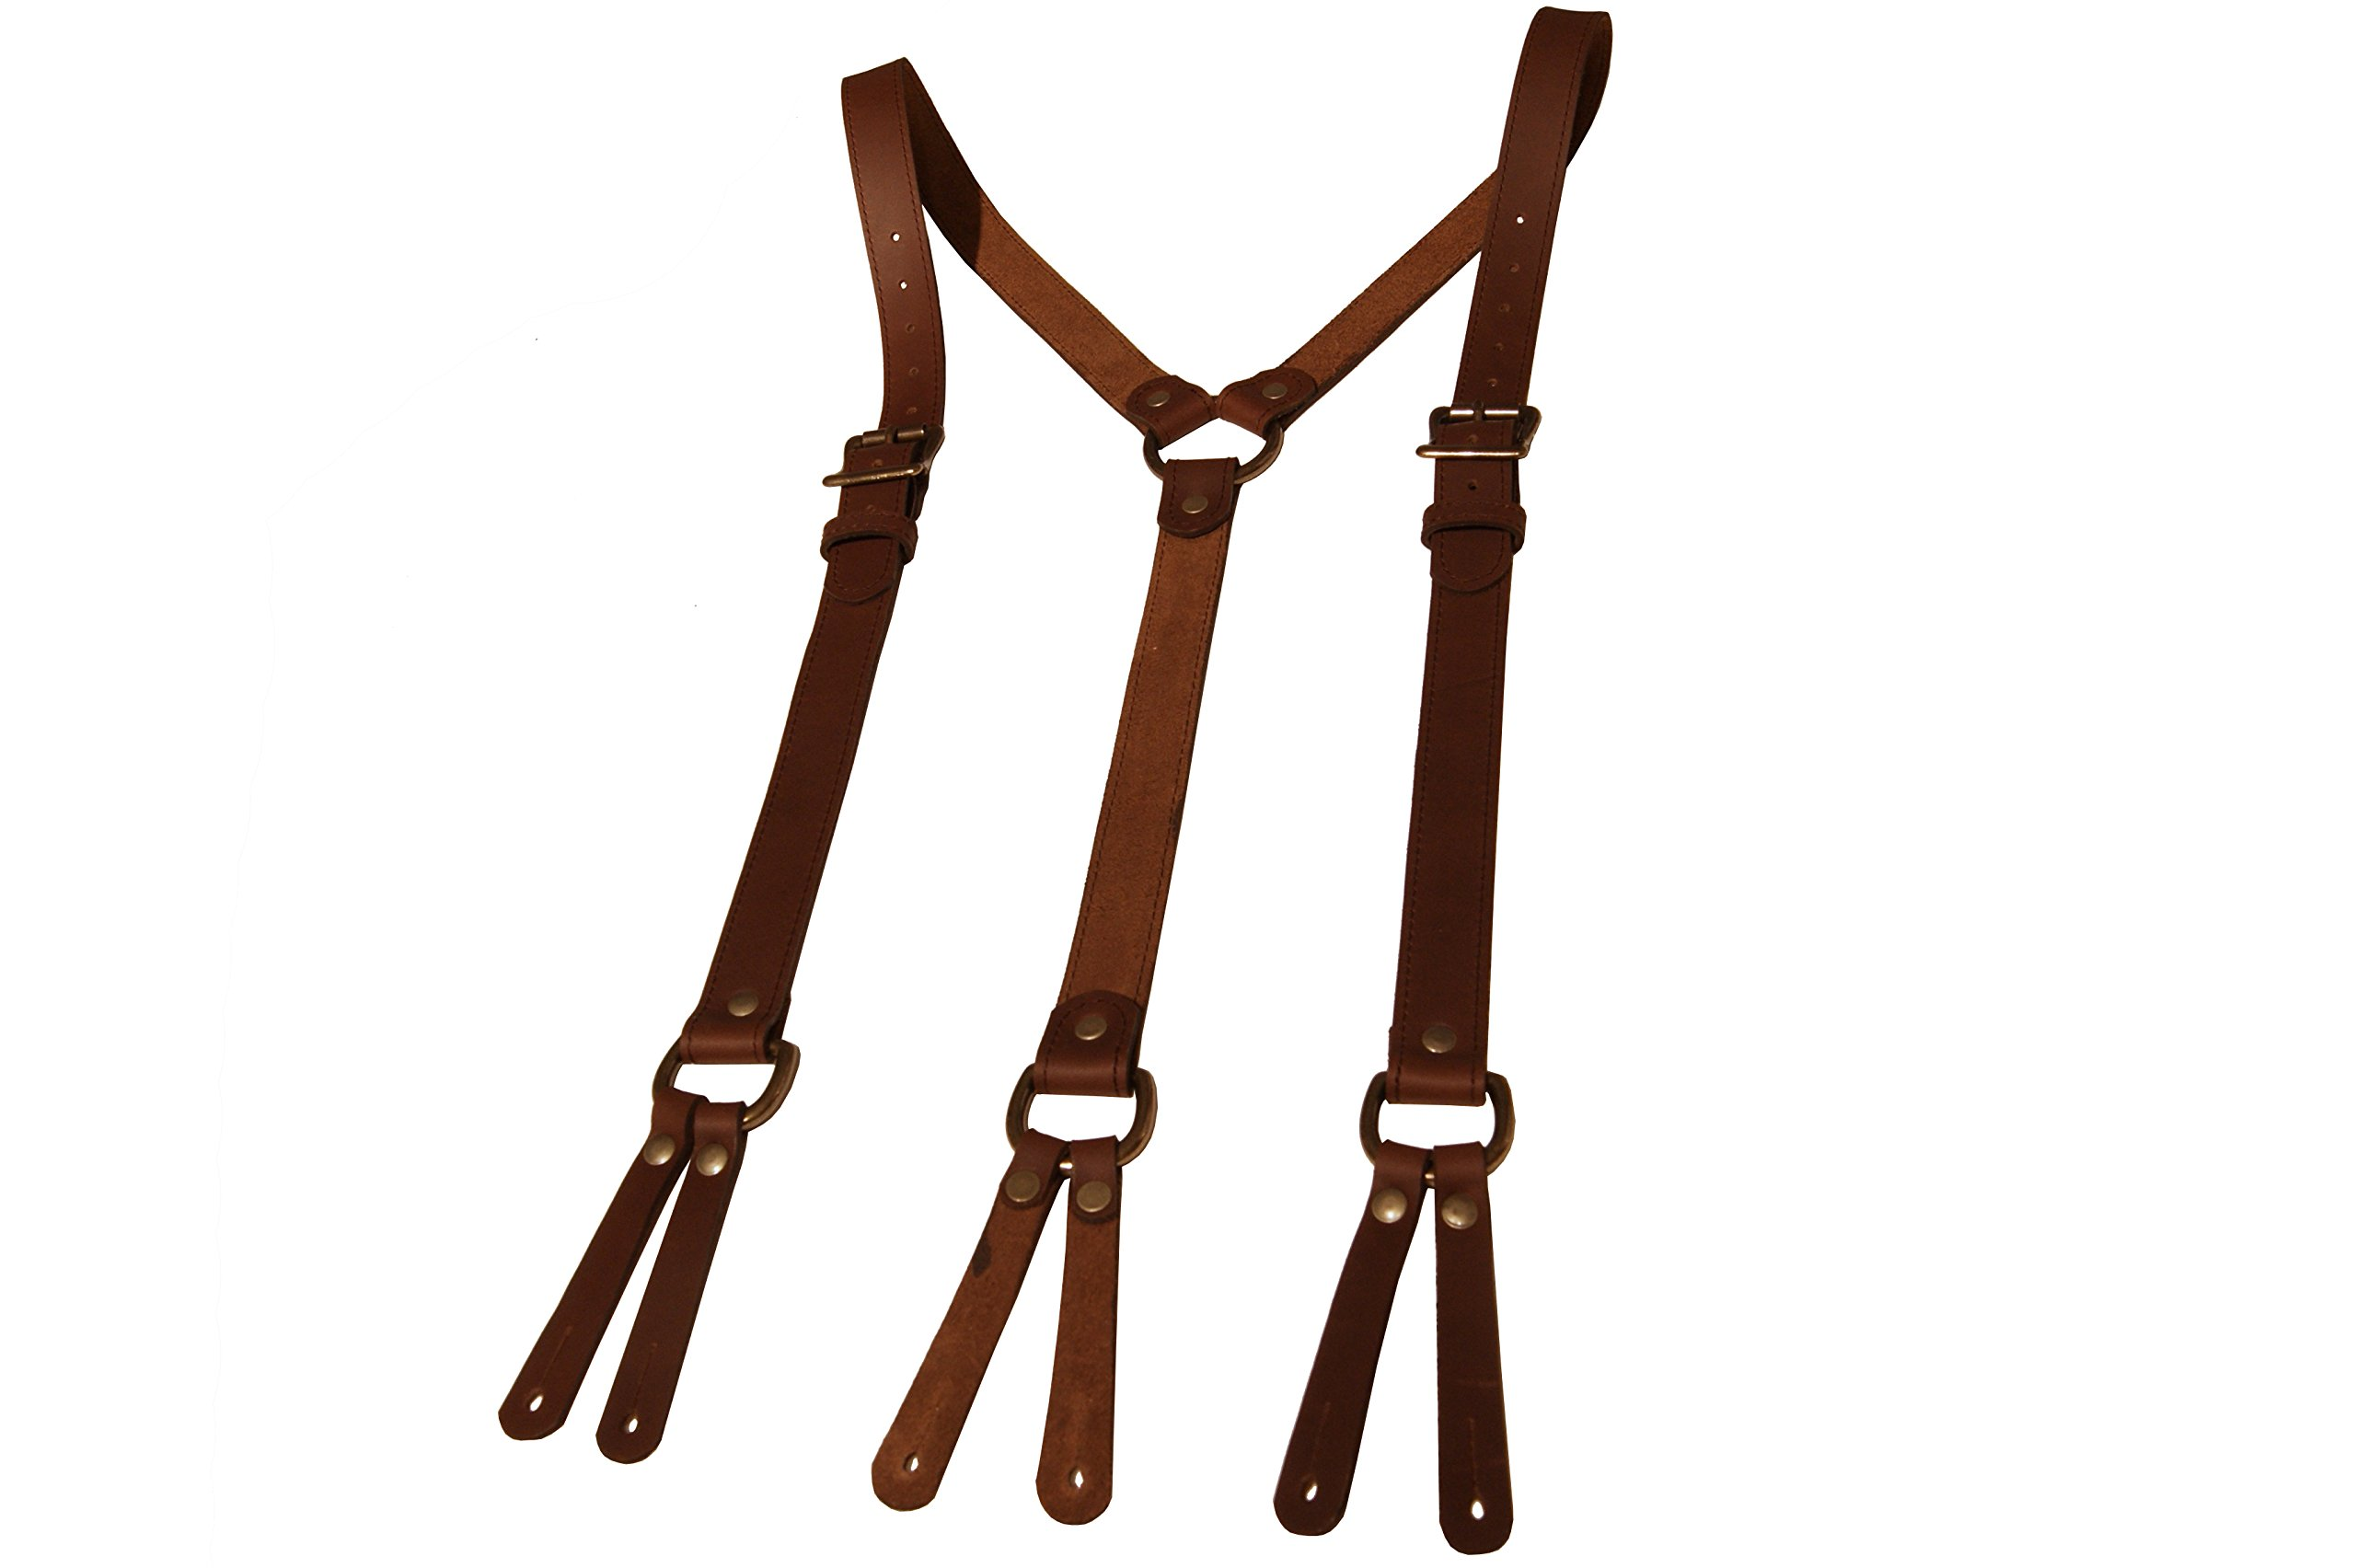 Project Transaction Men's Leather Suspenders M/L Dark Brown/Antique Buttonholes